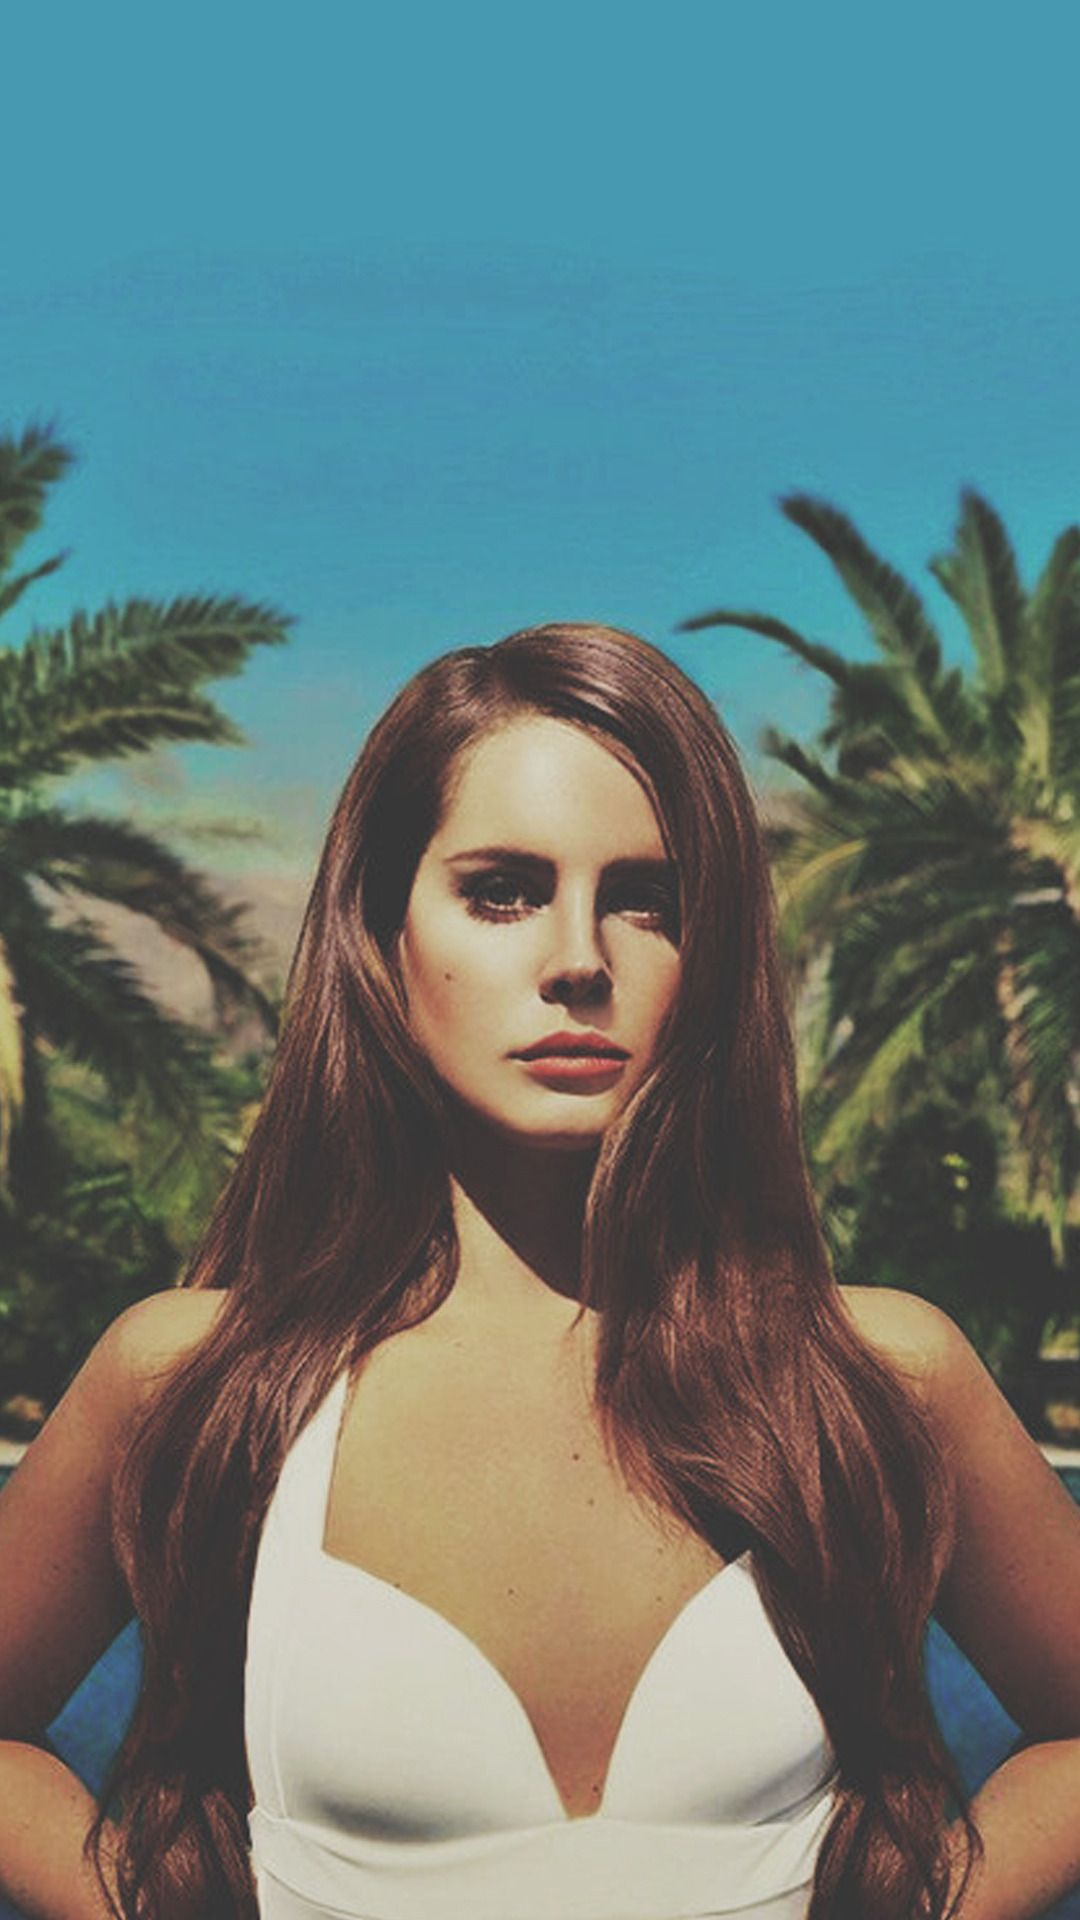 Wallpaper Tumblr Lana Del Rey Lana Del Lana Del Ray